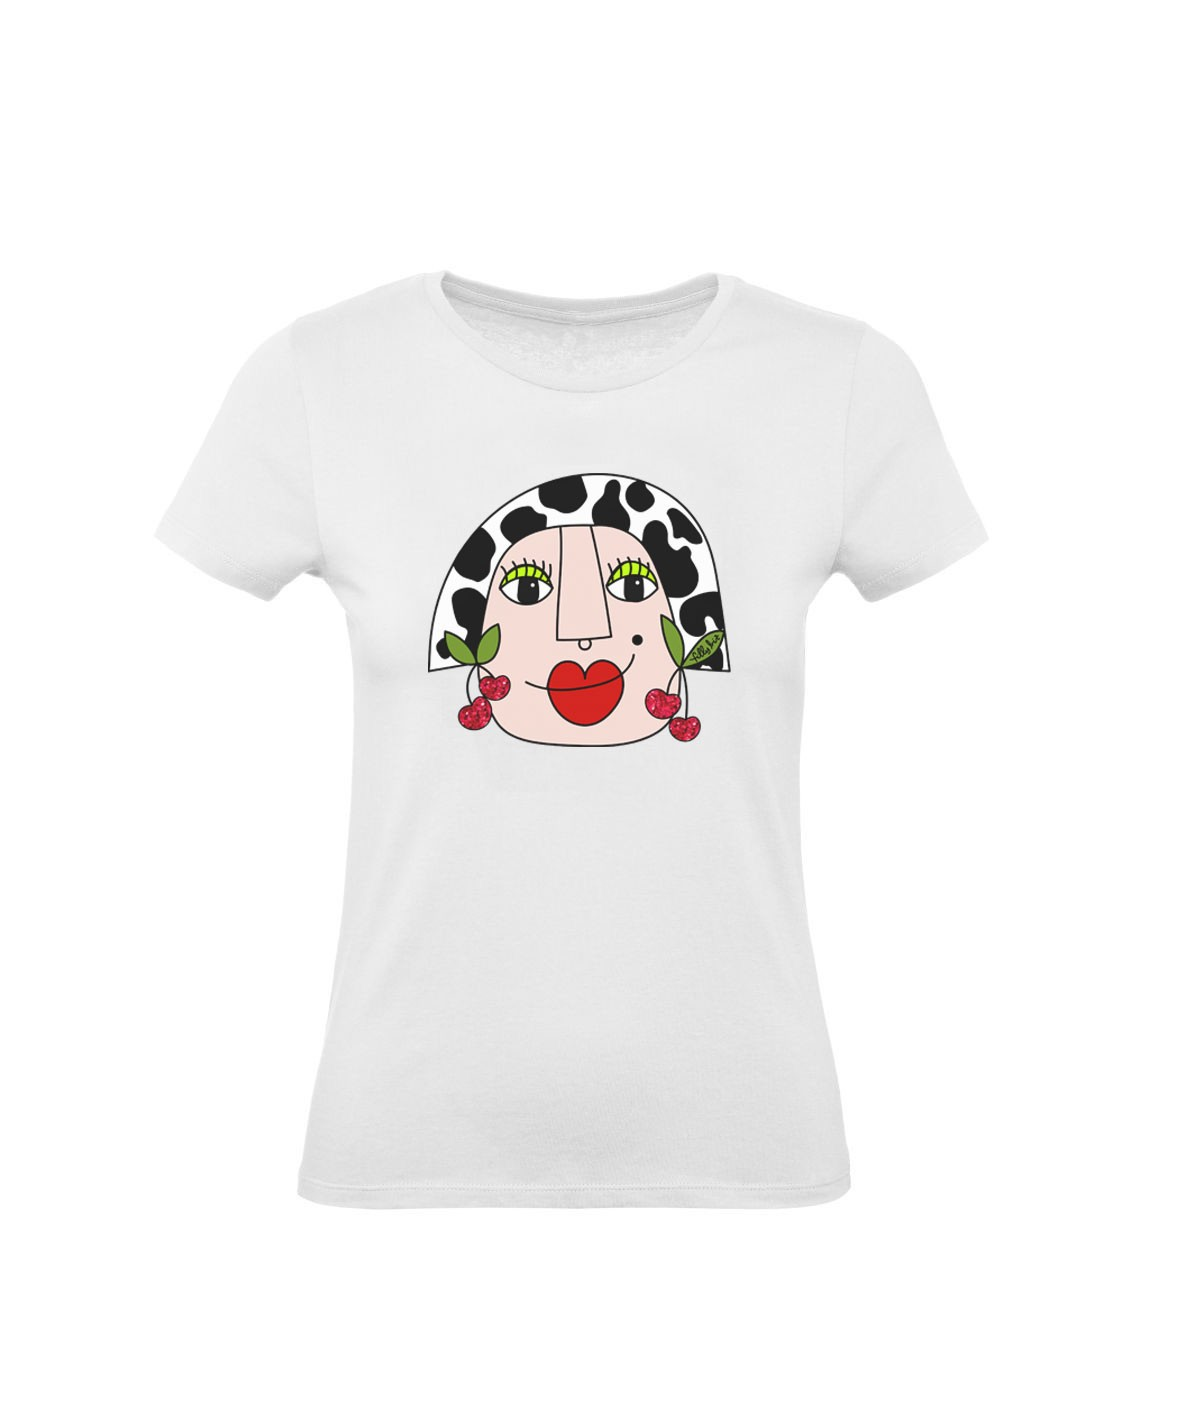 Cow girl ● t-shirt stampata